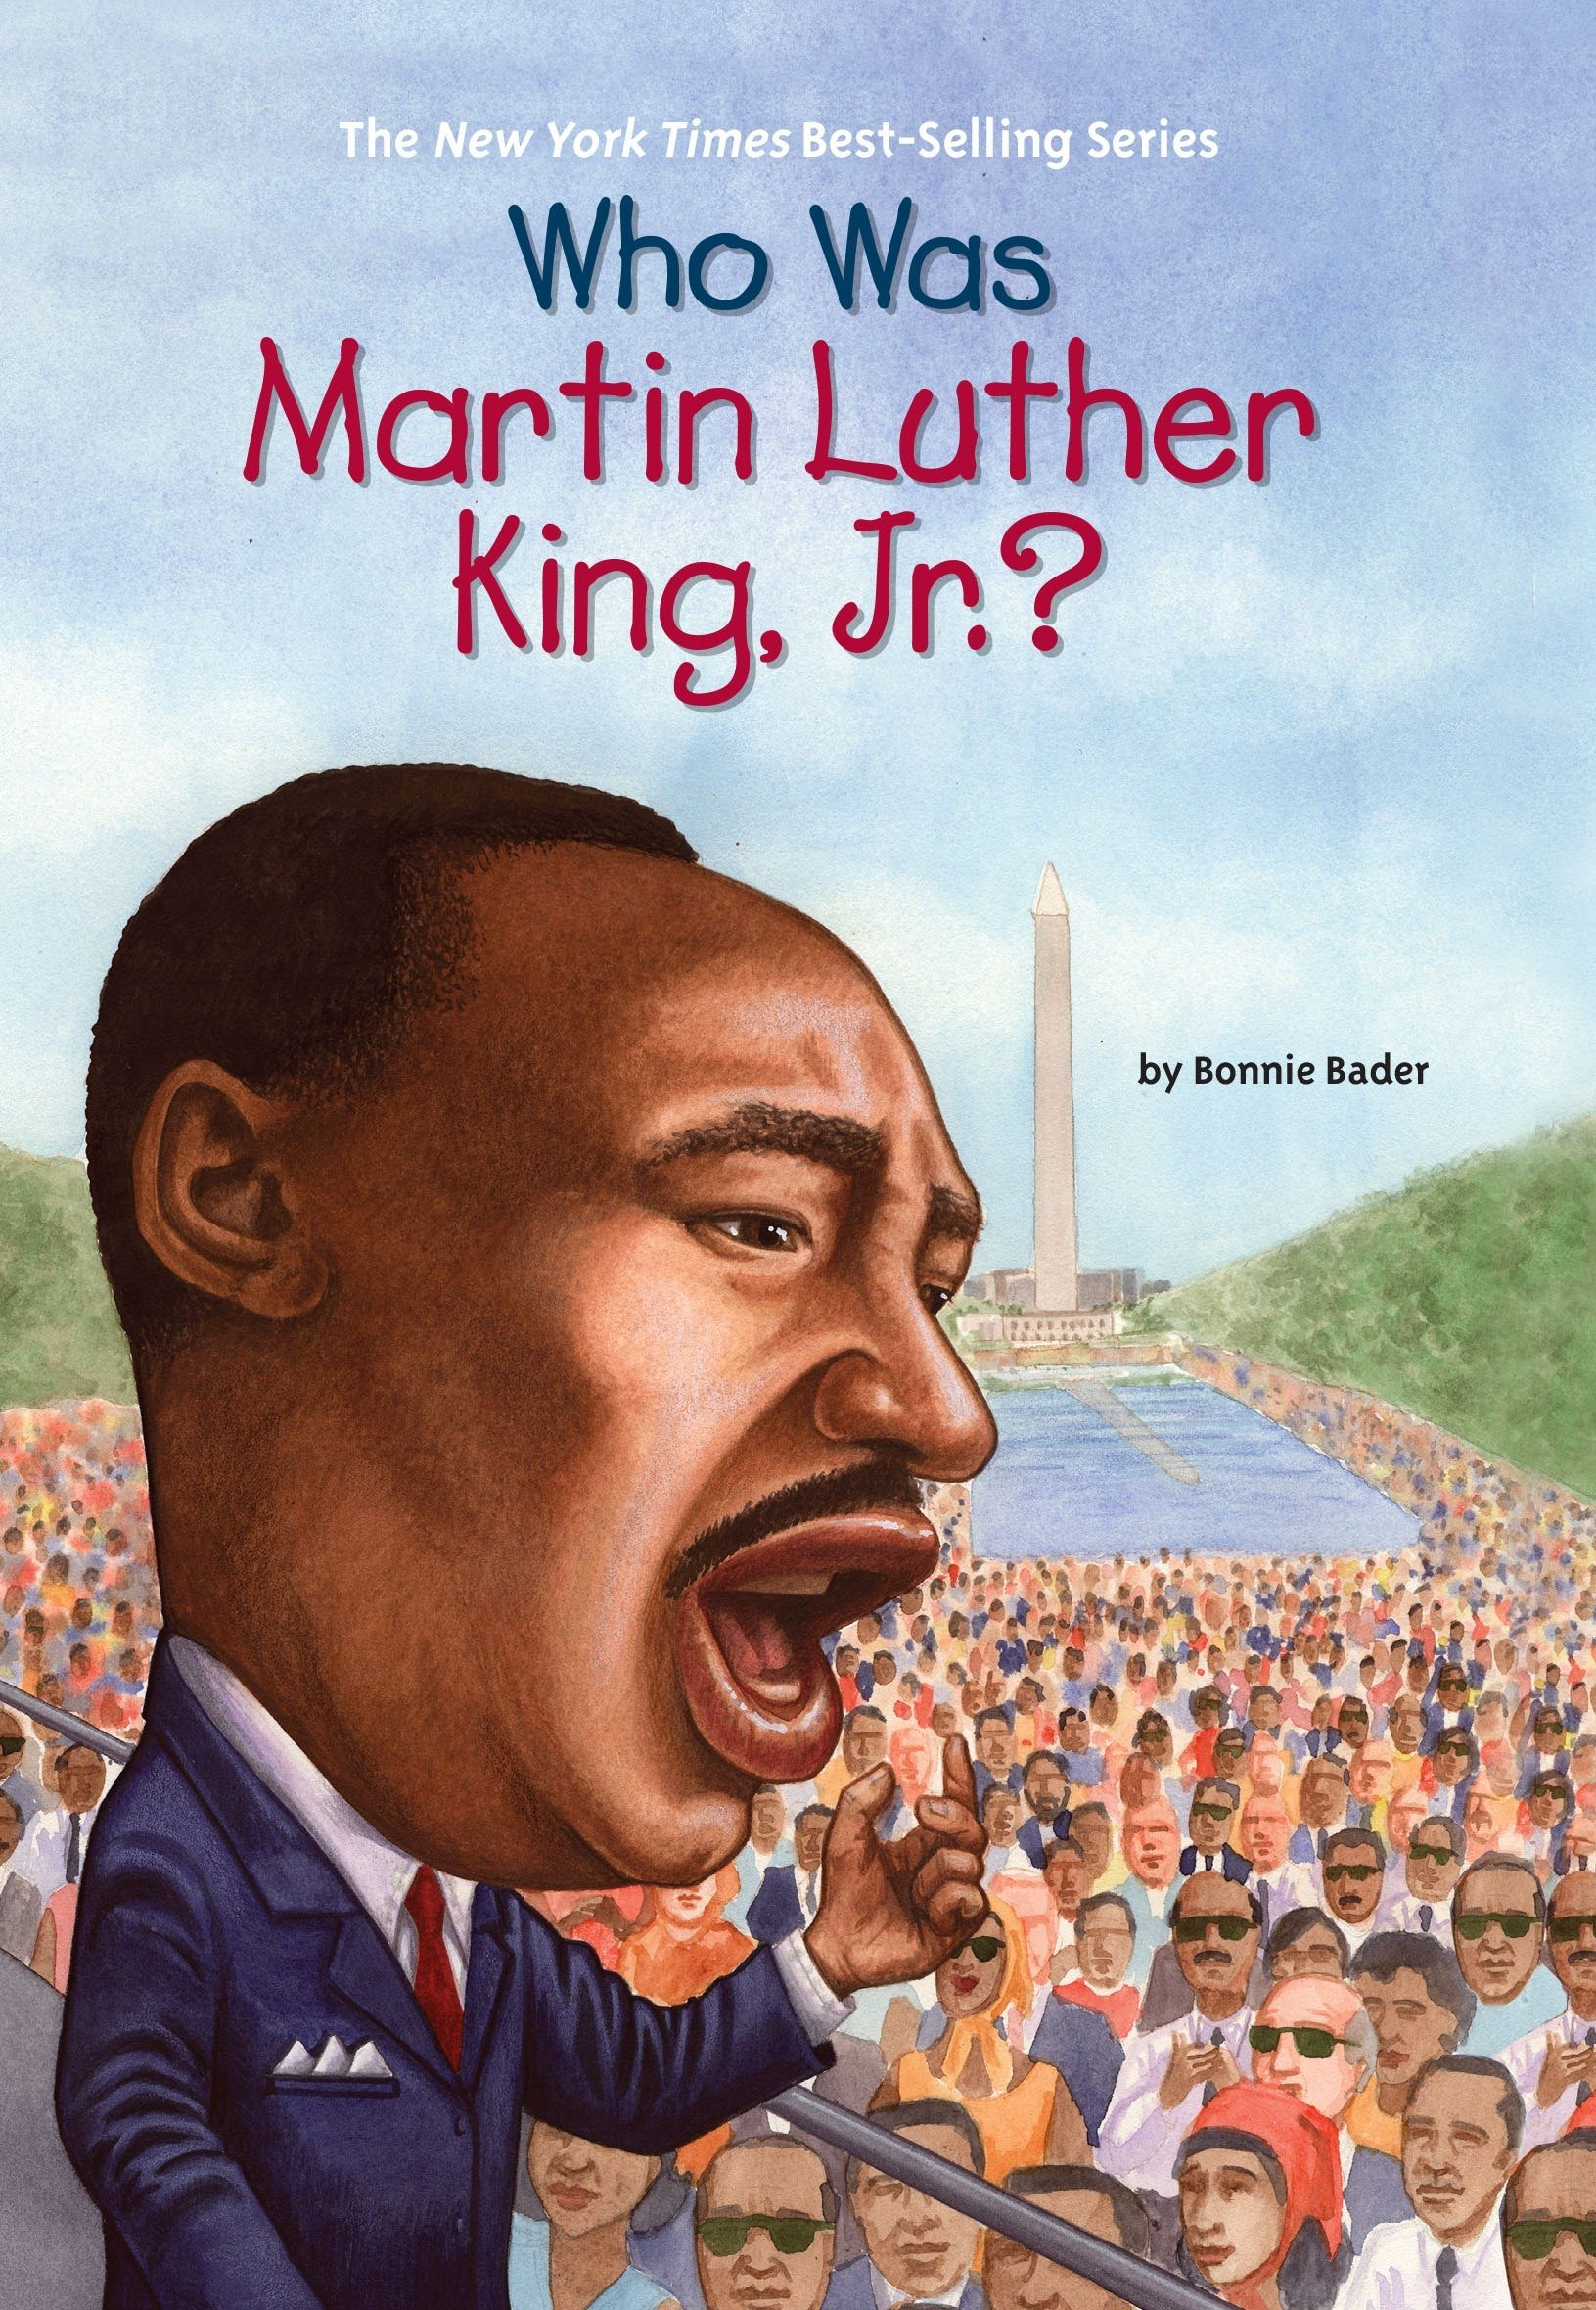 Who was martin luther king jr bonnie bader who hq elizabeth who was martin luther king jr bonnie bader who hq elizabeth wolf 9780448447230 amazon books ibookread Read Online